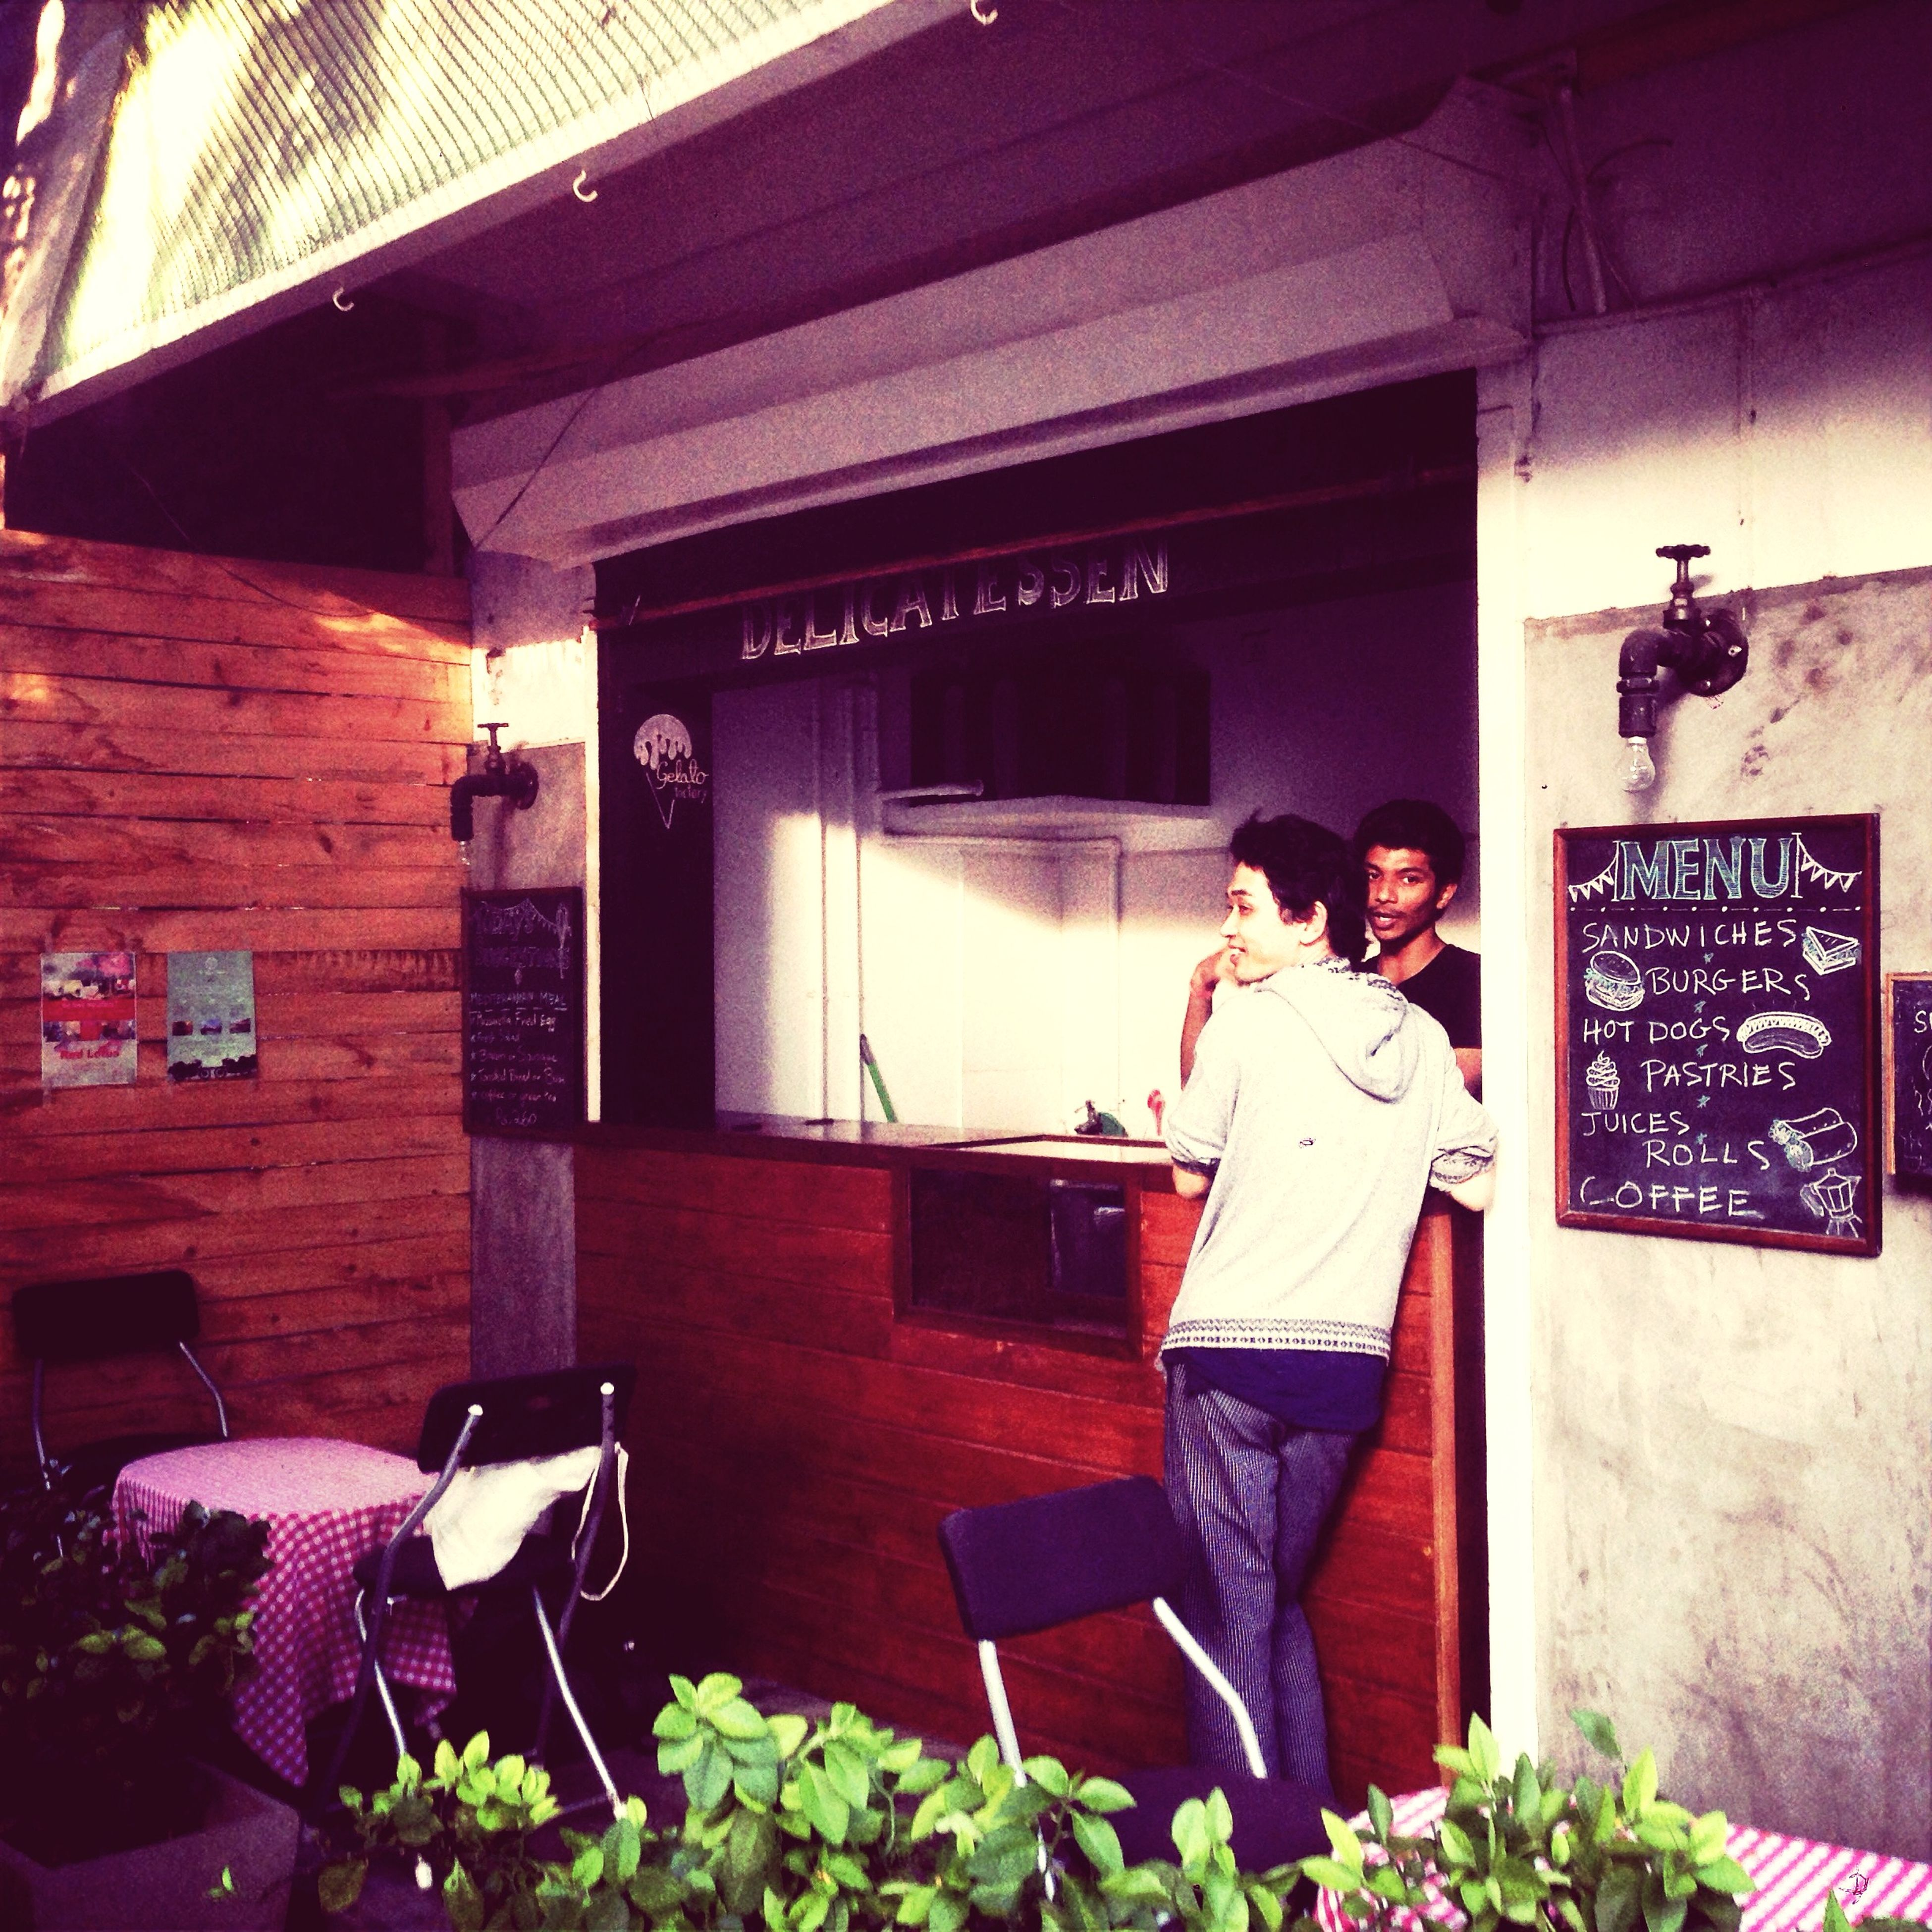 buger shop in pondichrry. Pondichrry Indiacafe